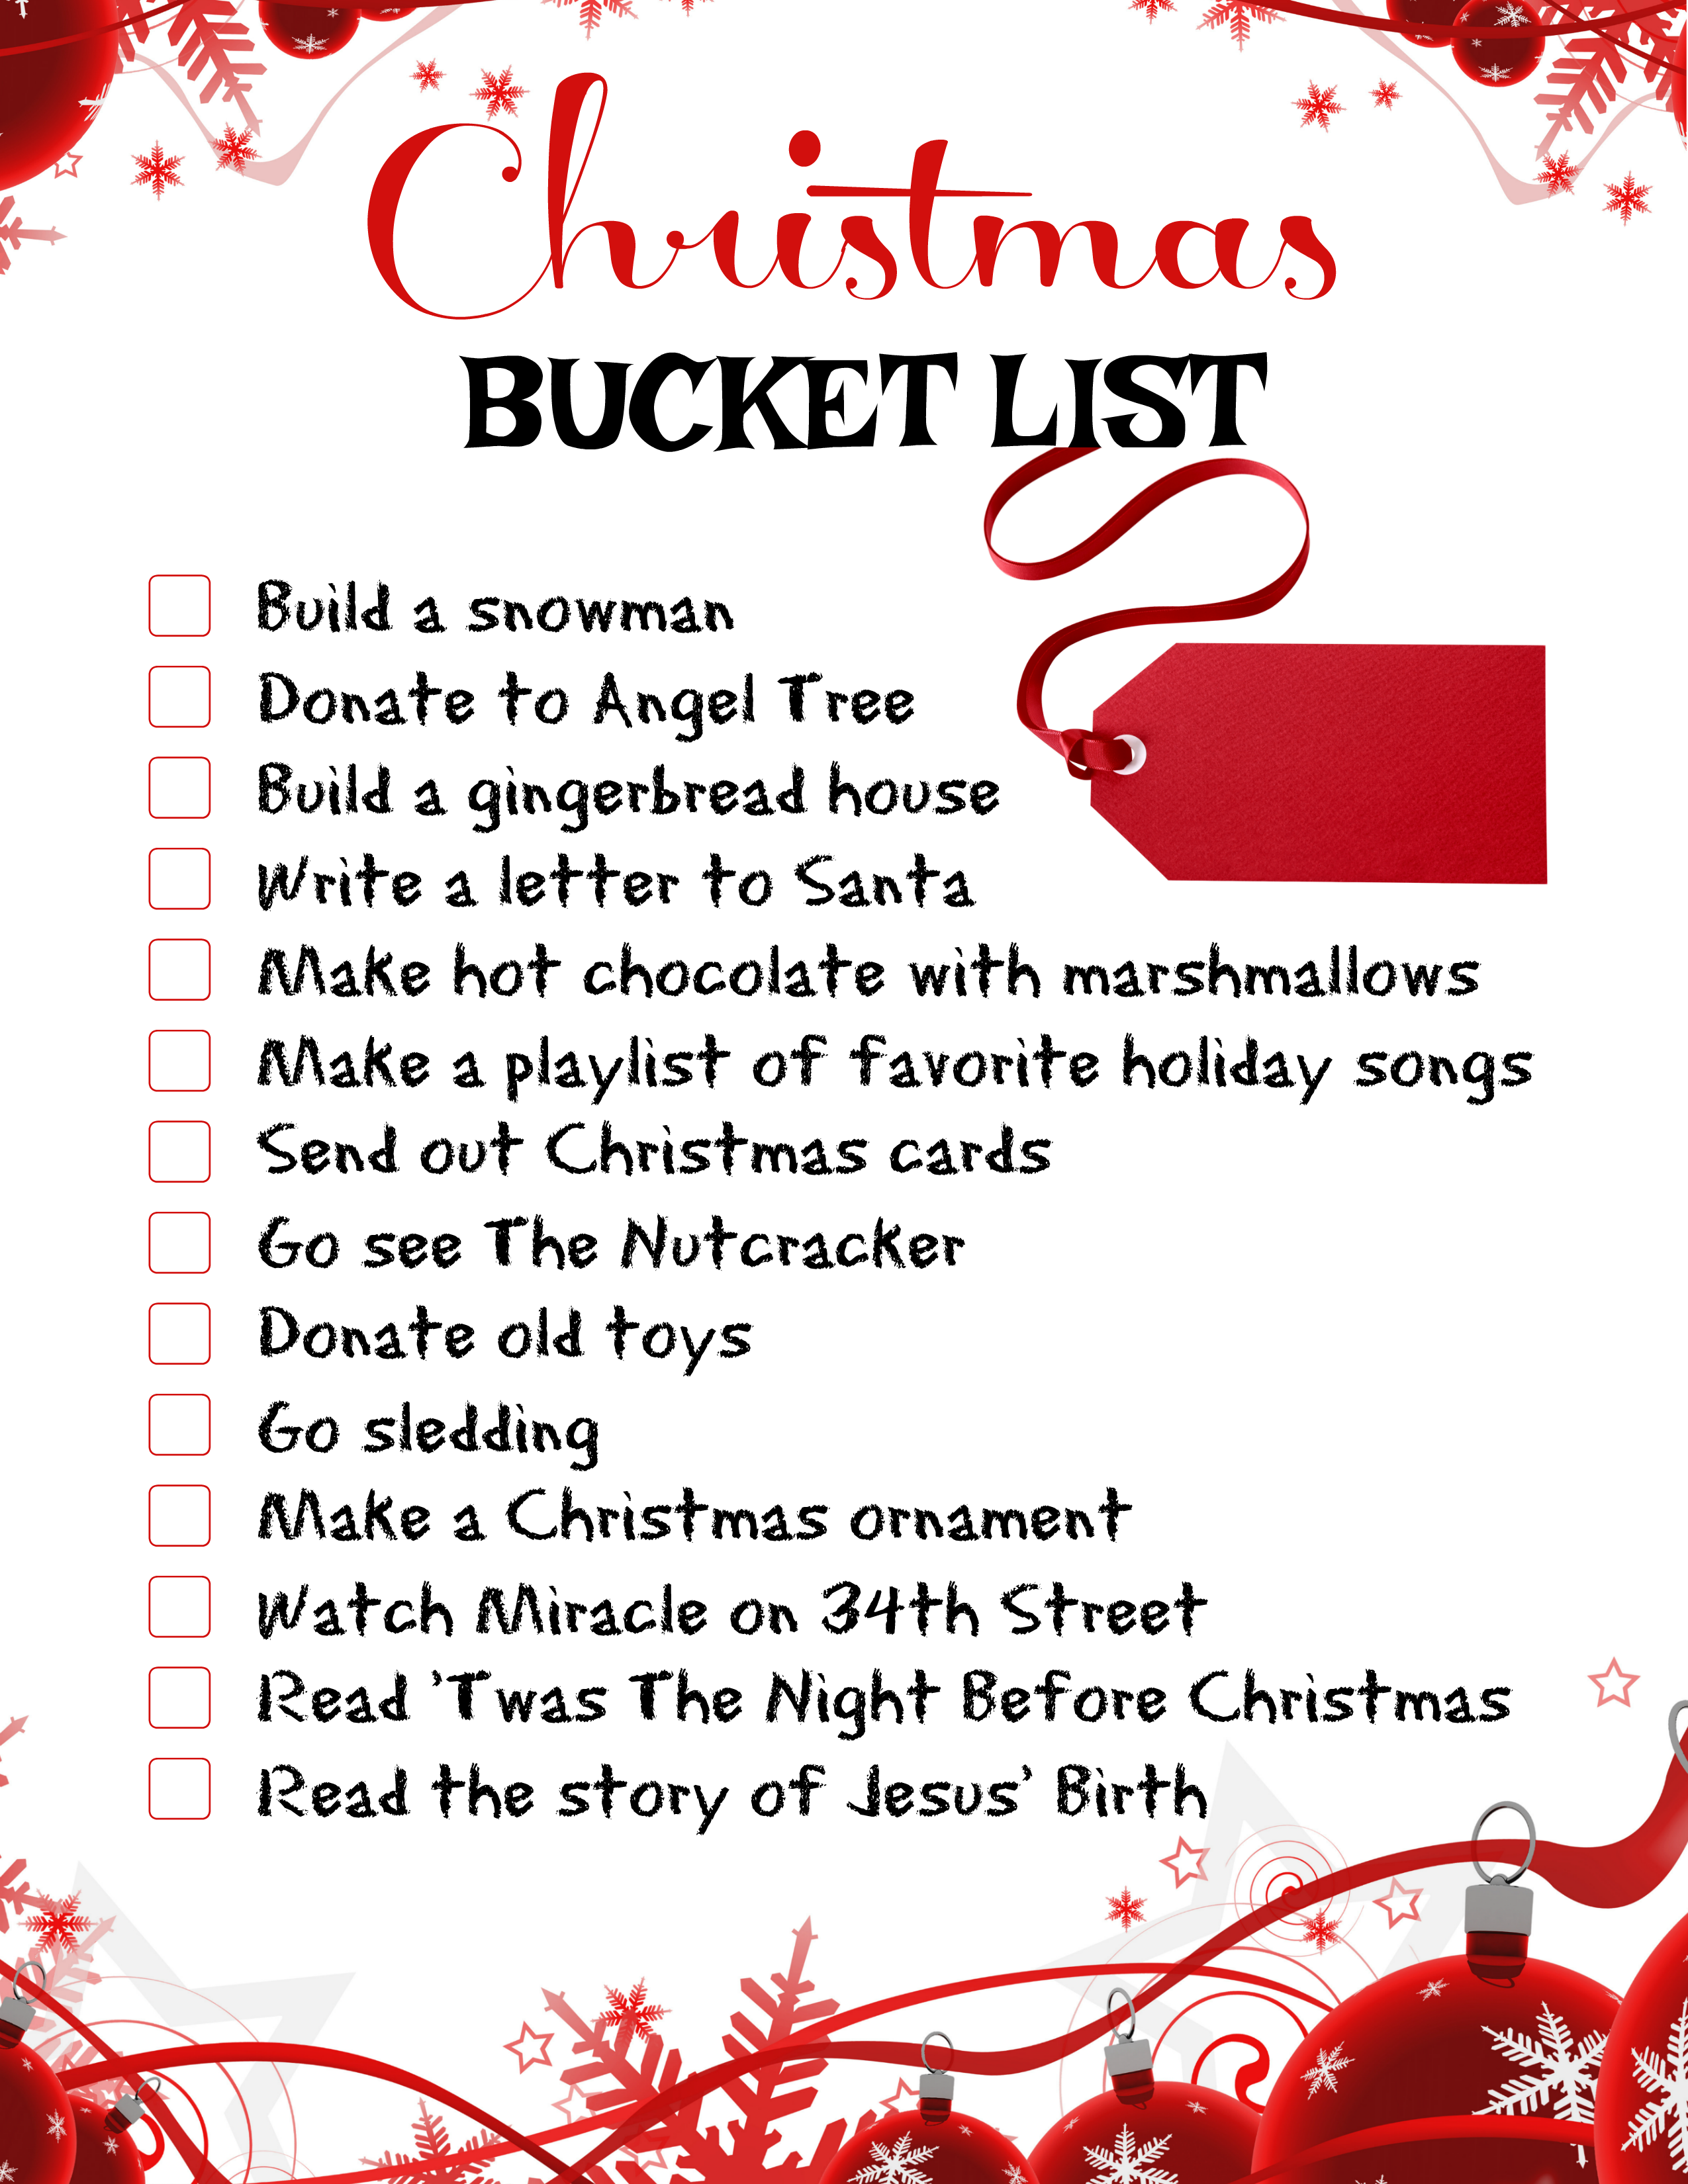 Family Traditions Christmas Bucket List Printable The Frugal Sisters